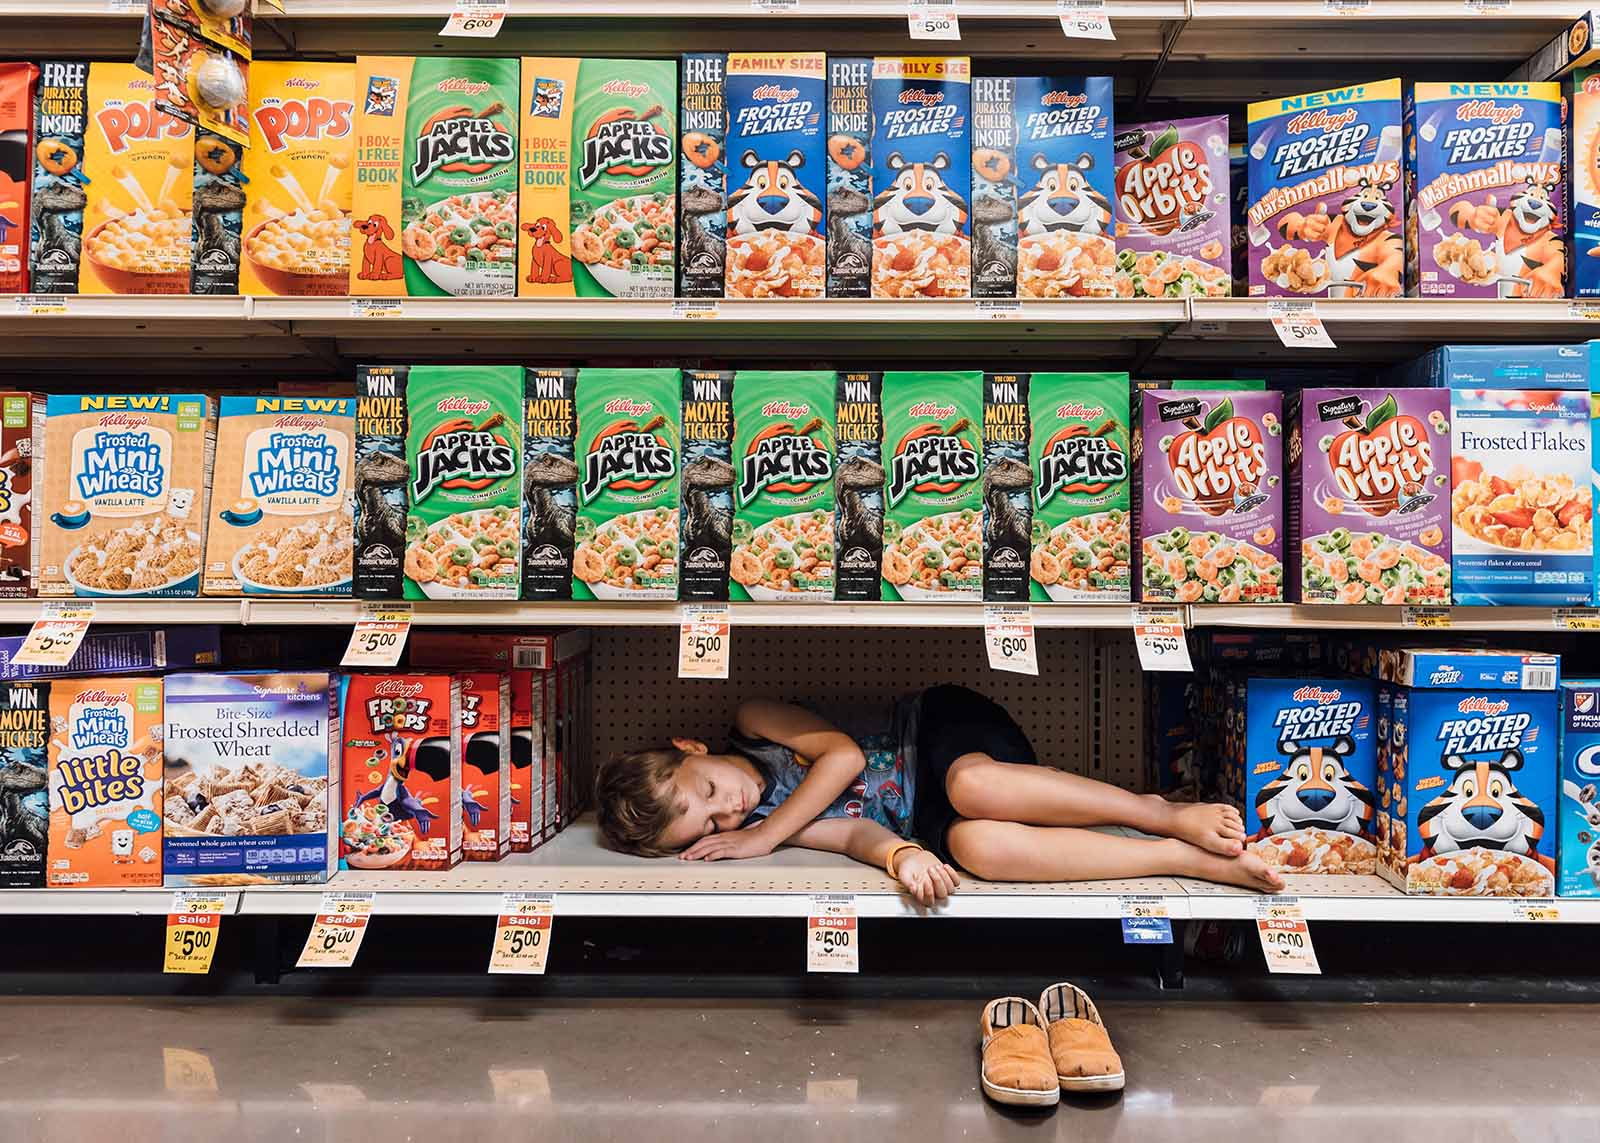 A boy naps on a supermarket shelf next to the cereal.